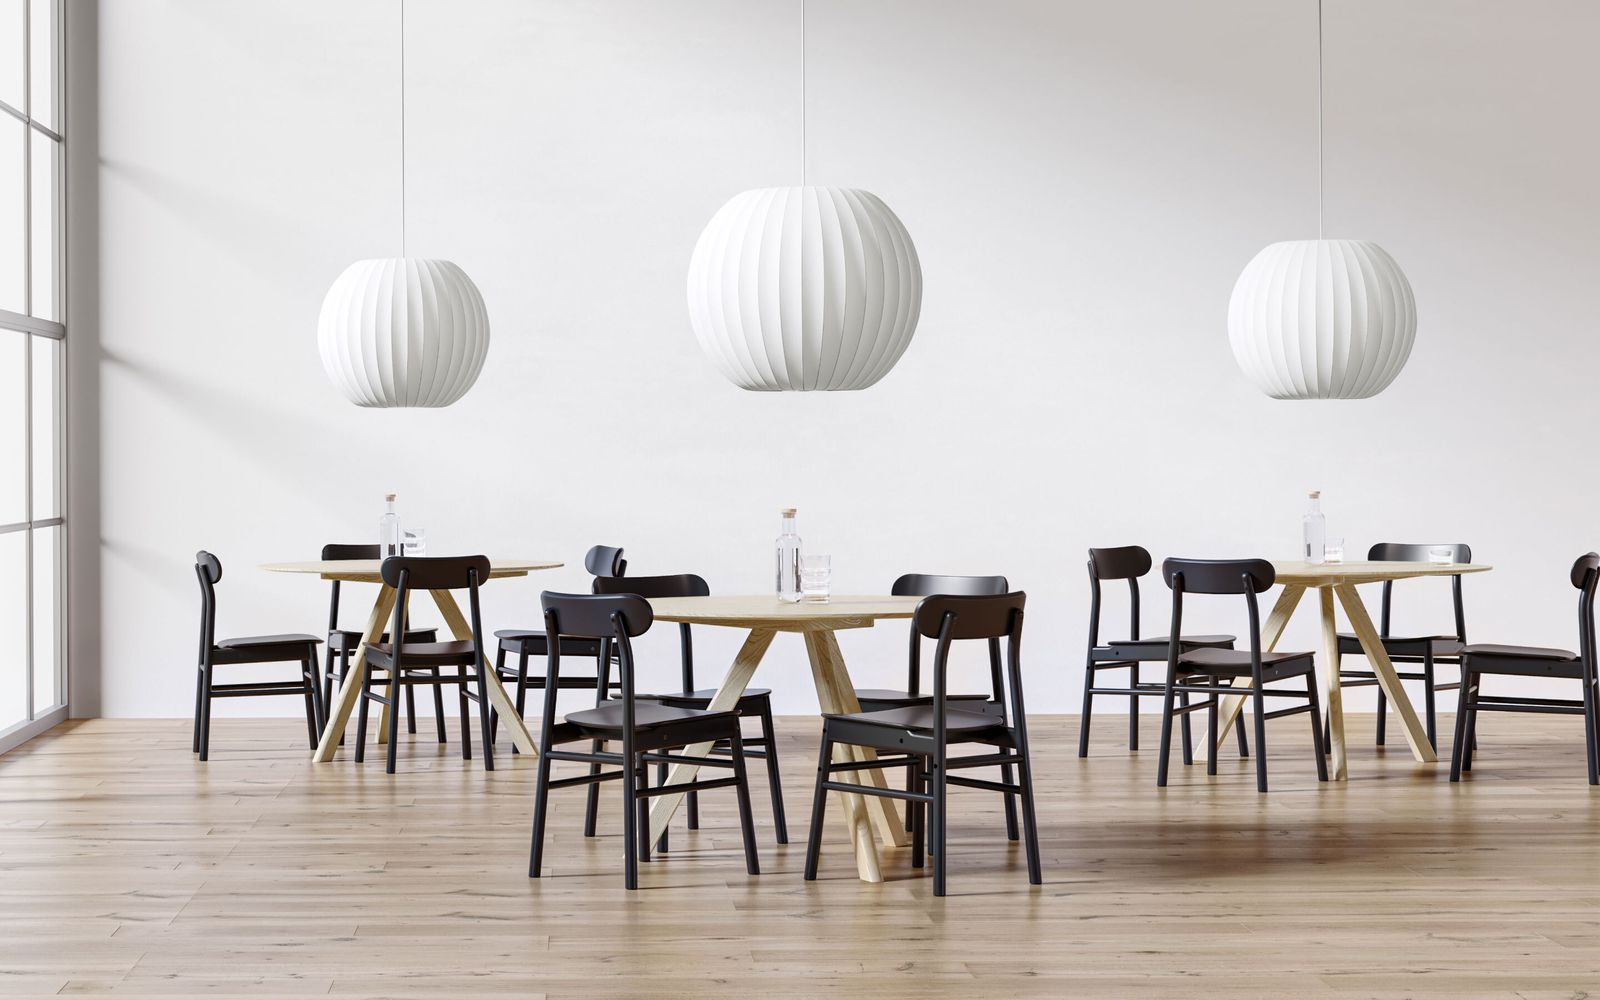 Dining area in nordic light